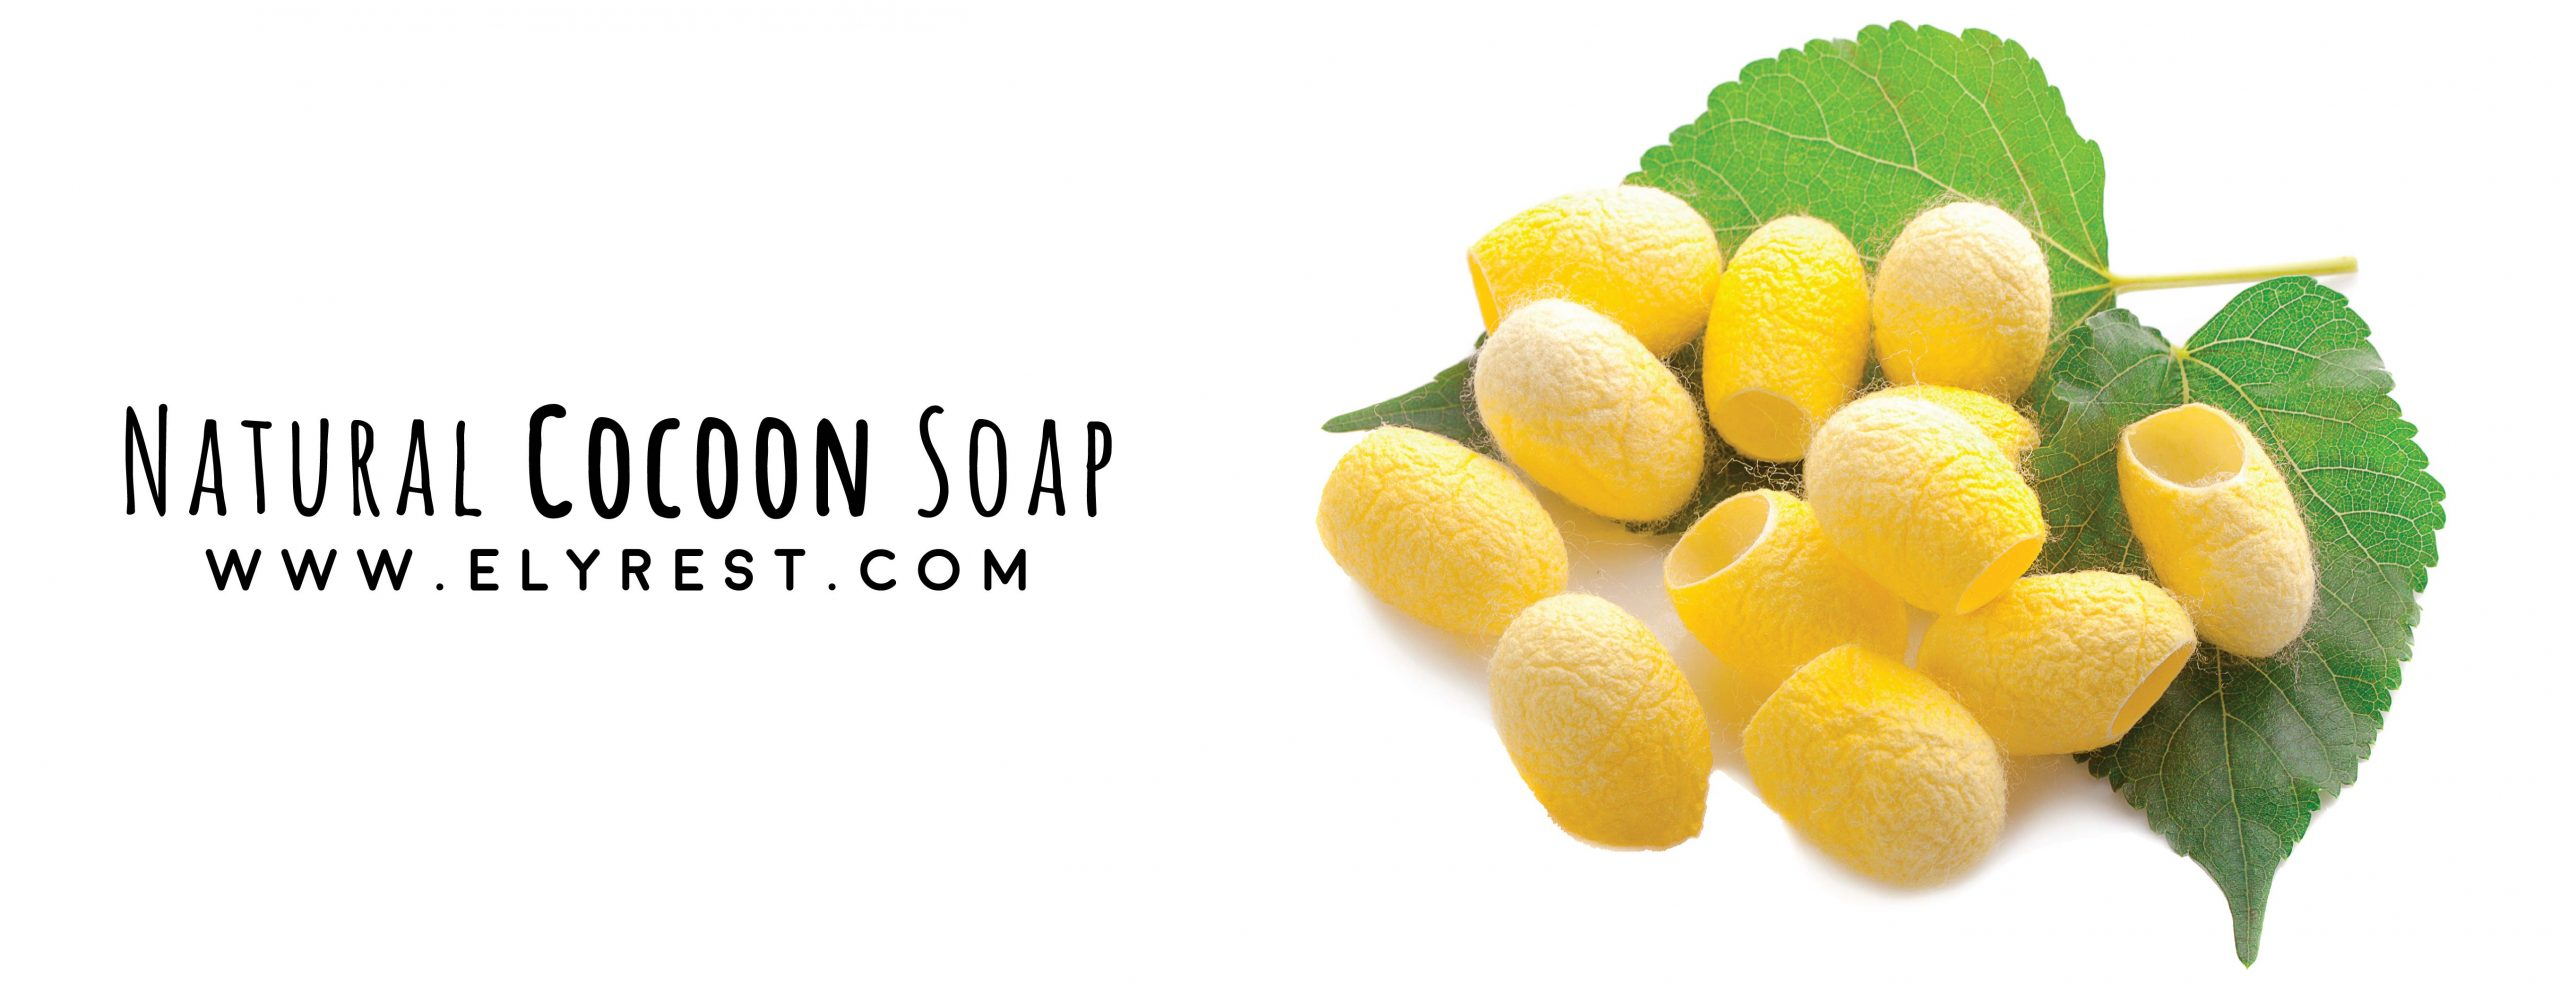 Natural Cocoon Soap